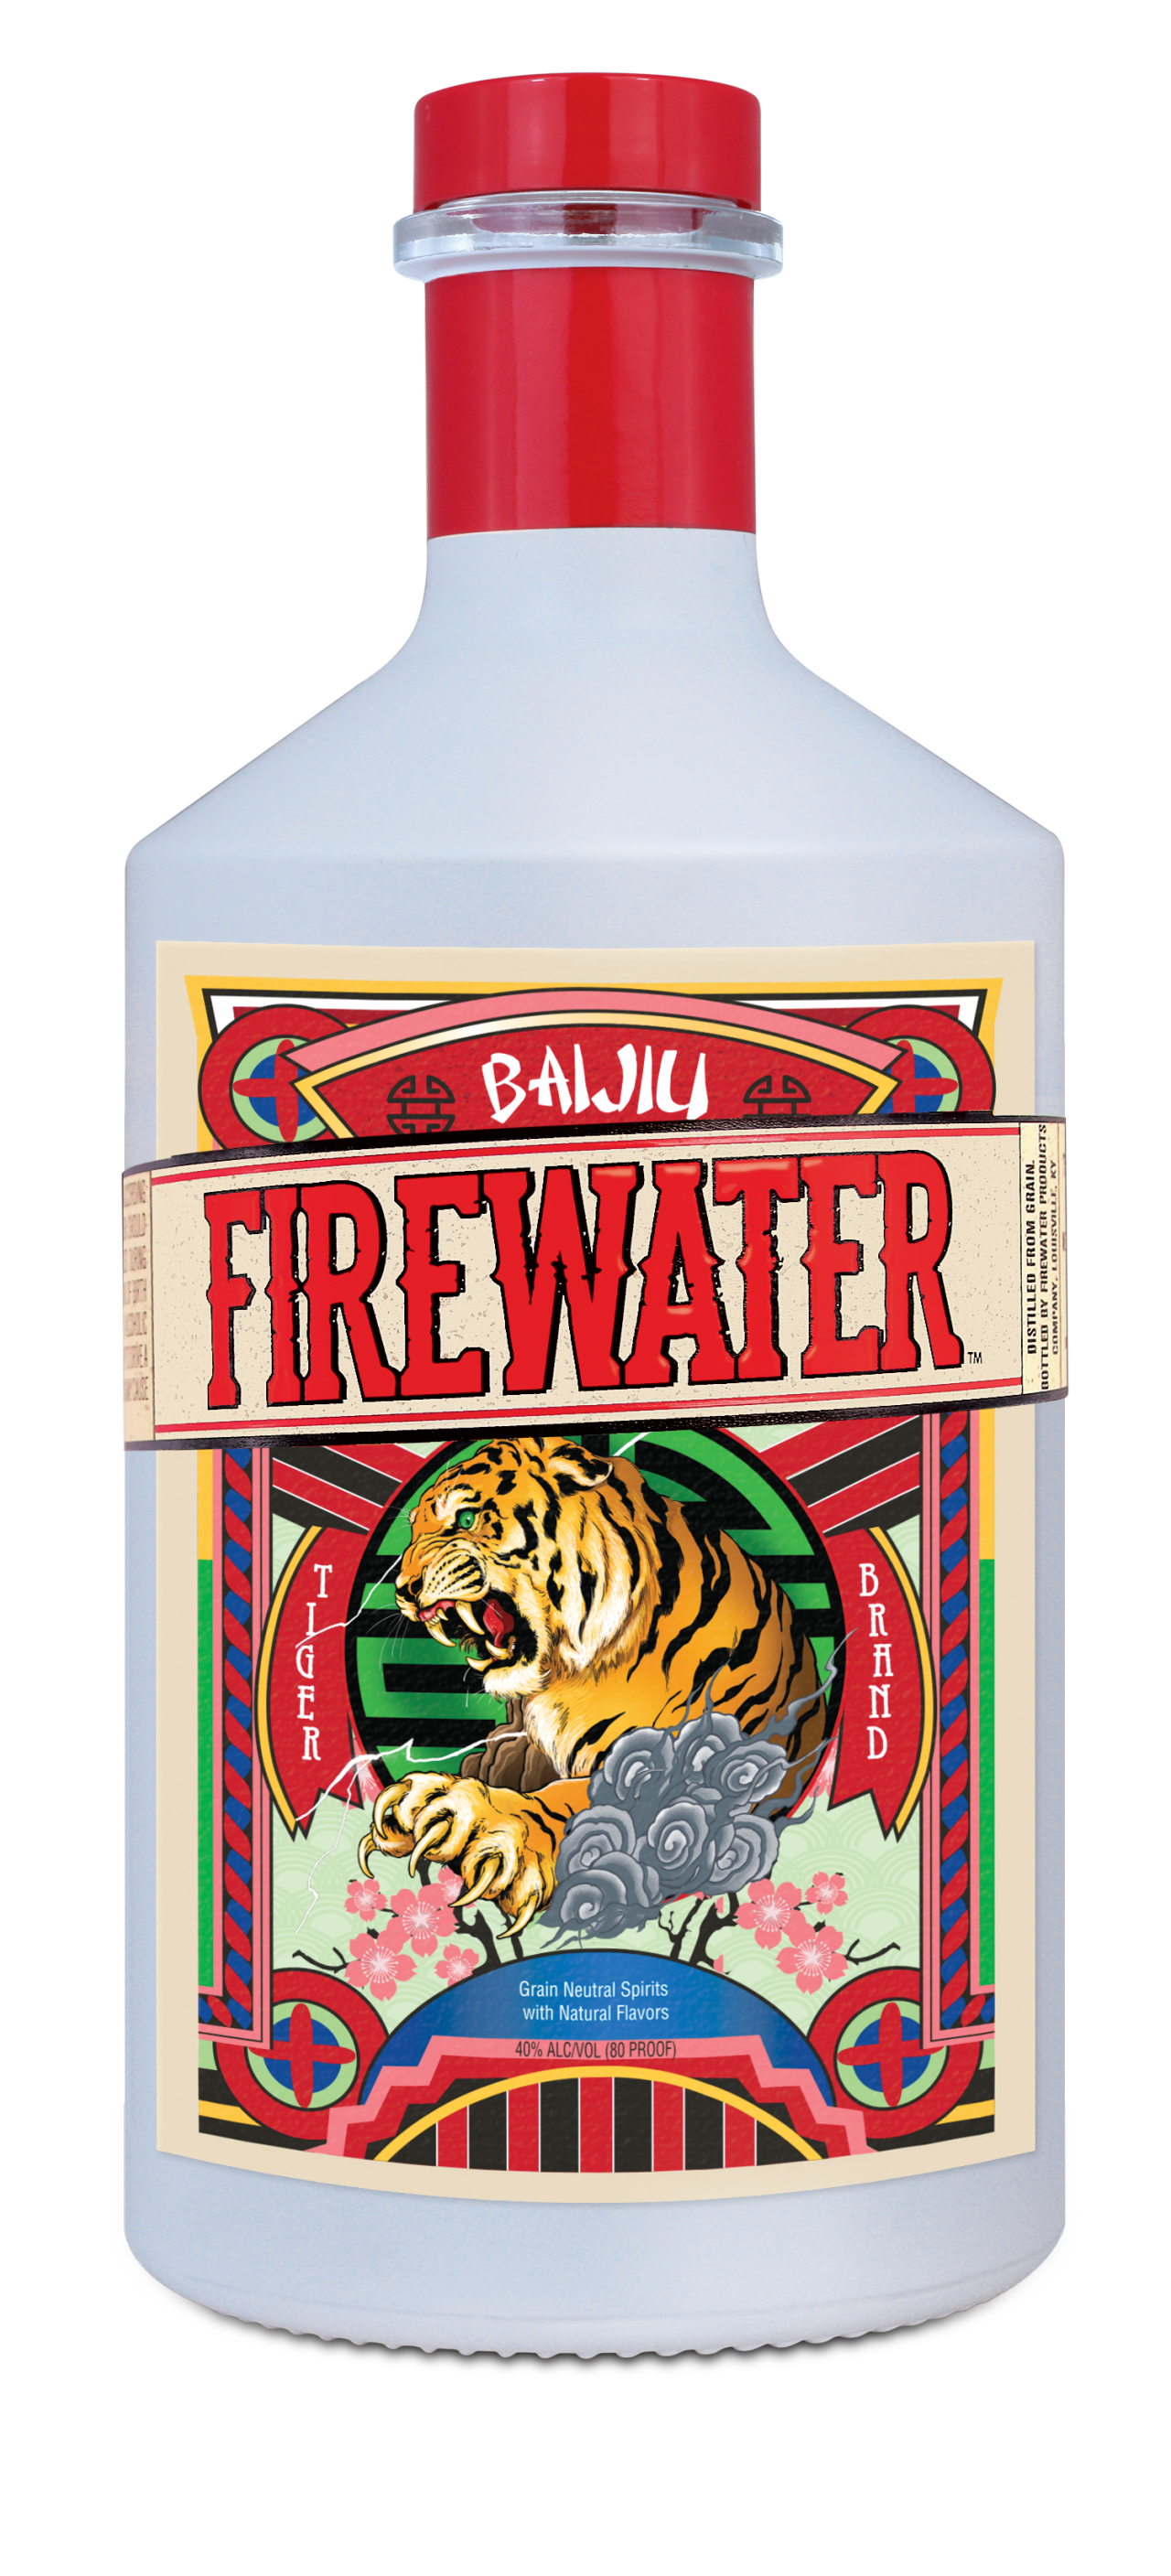 Firewater Bottle